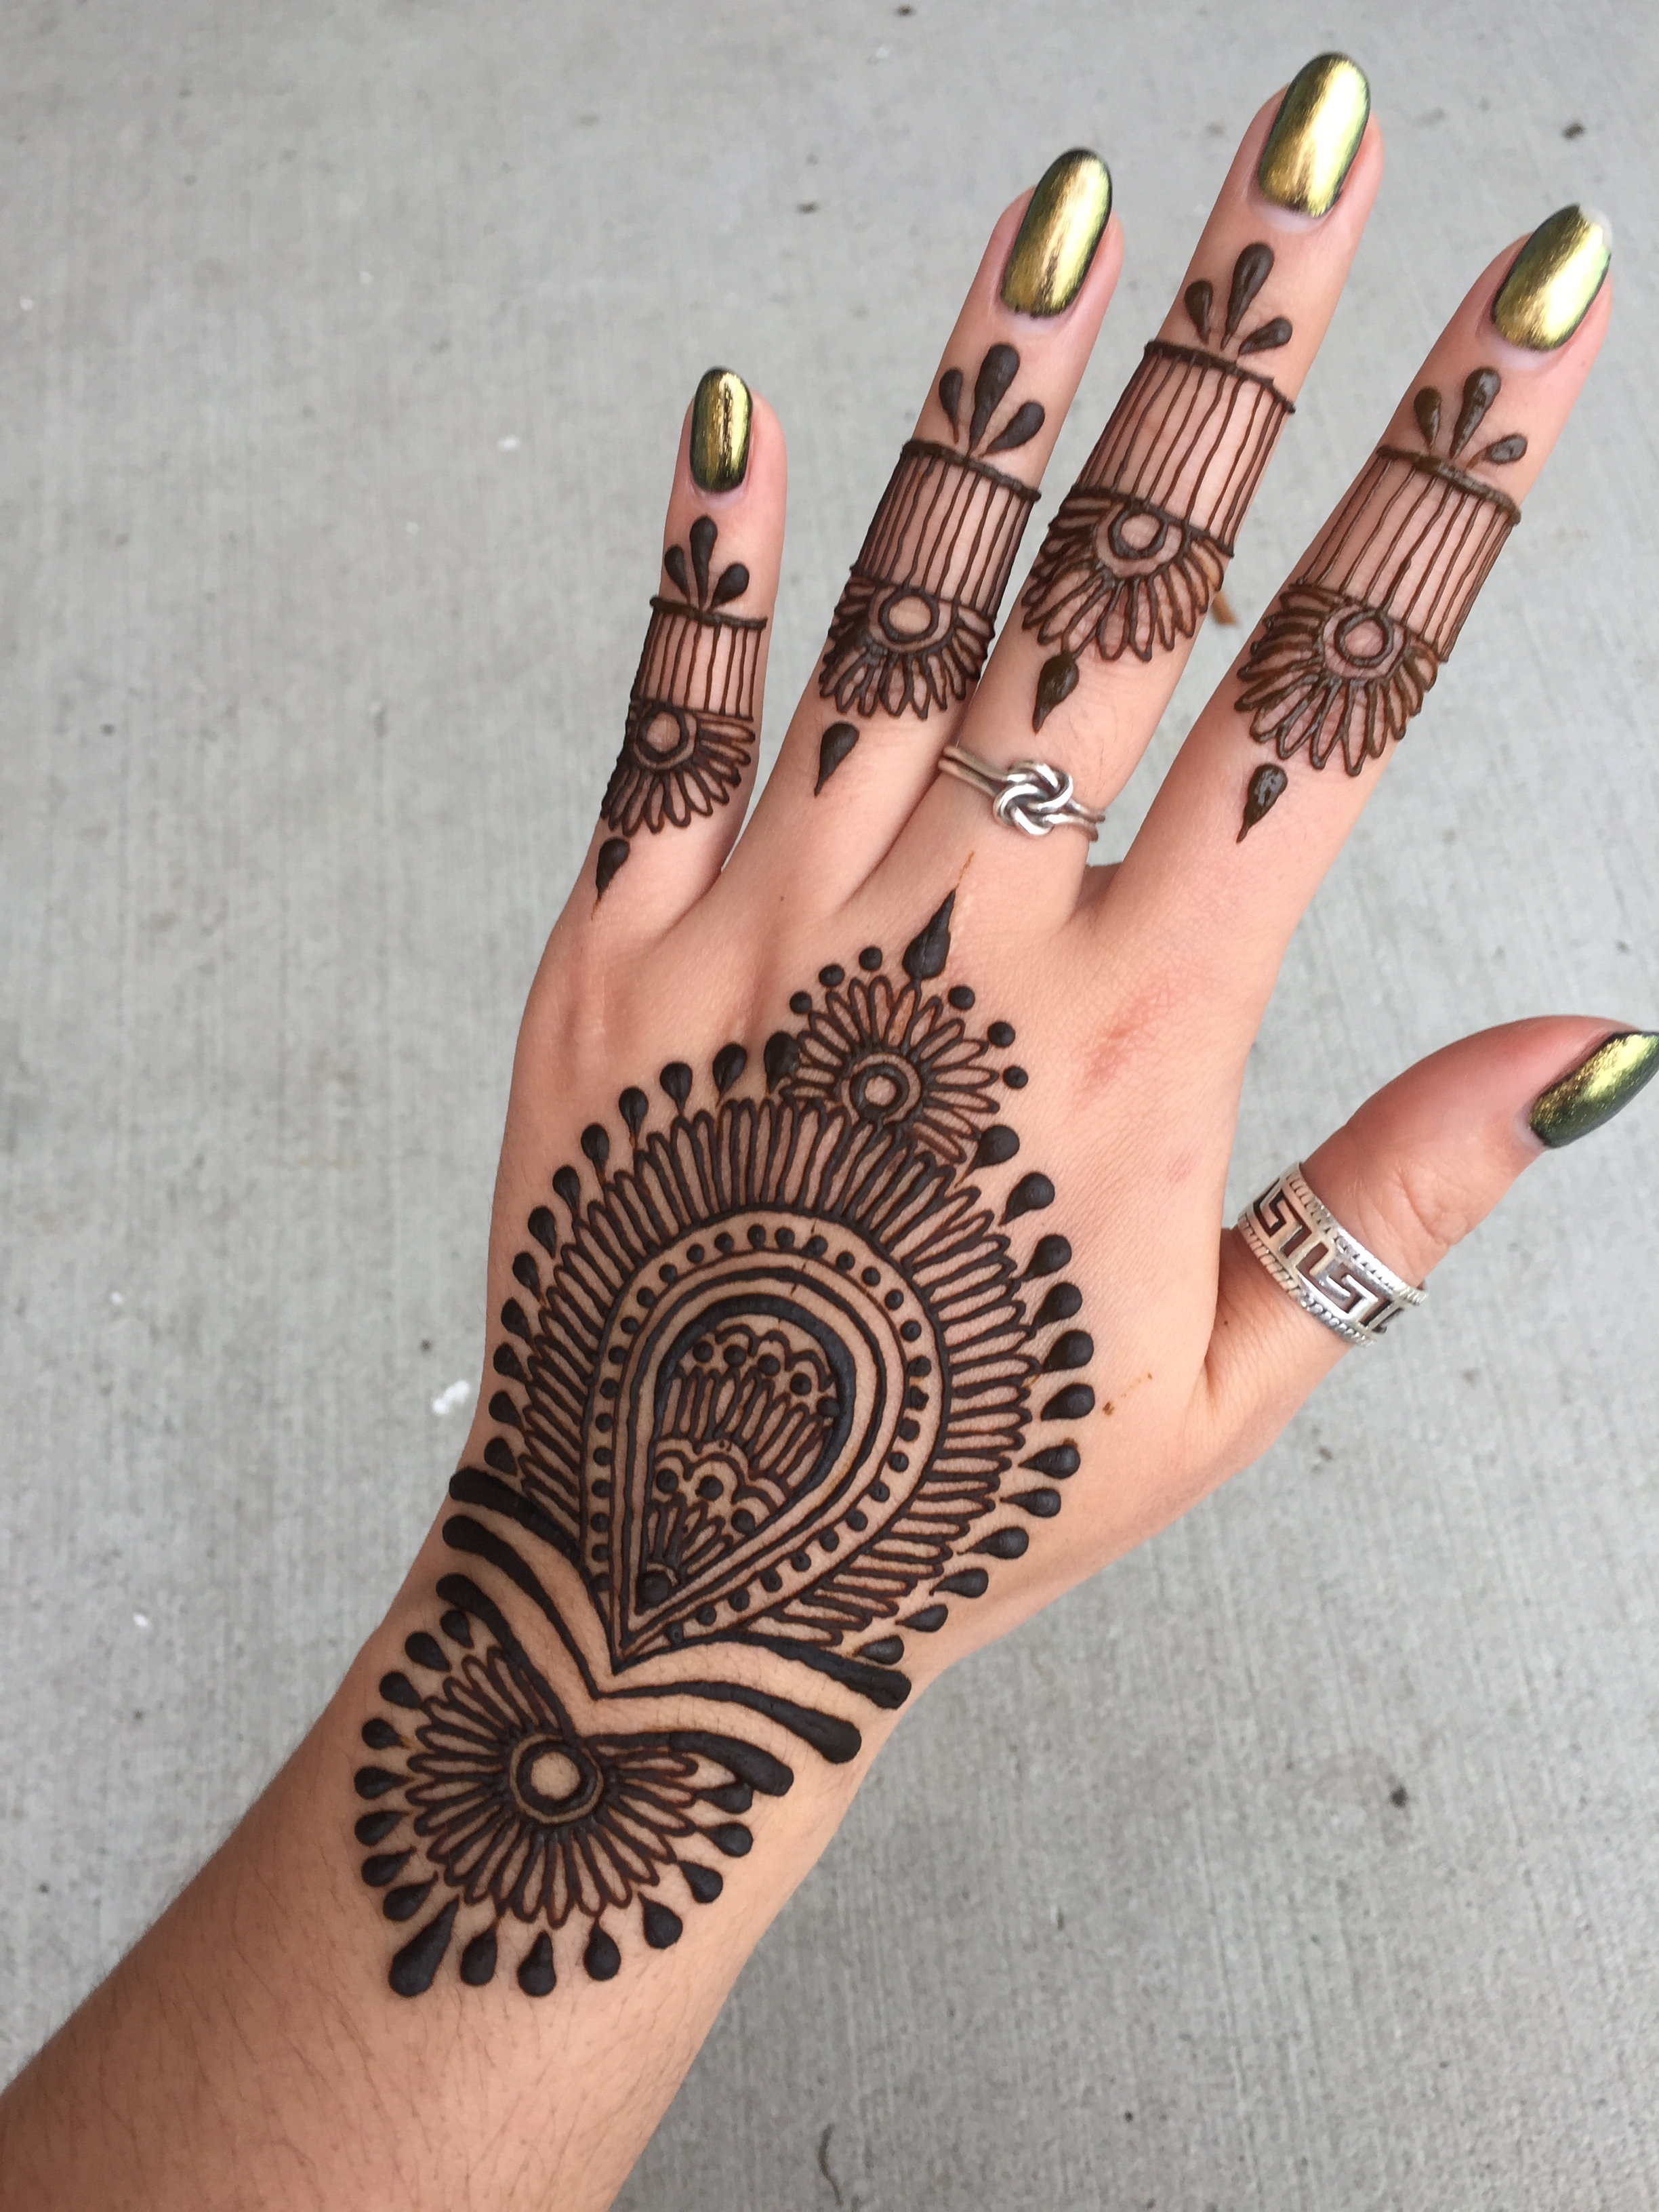 henna paste applied on the hand